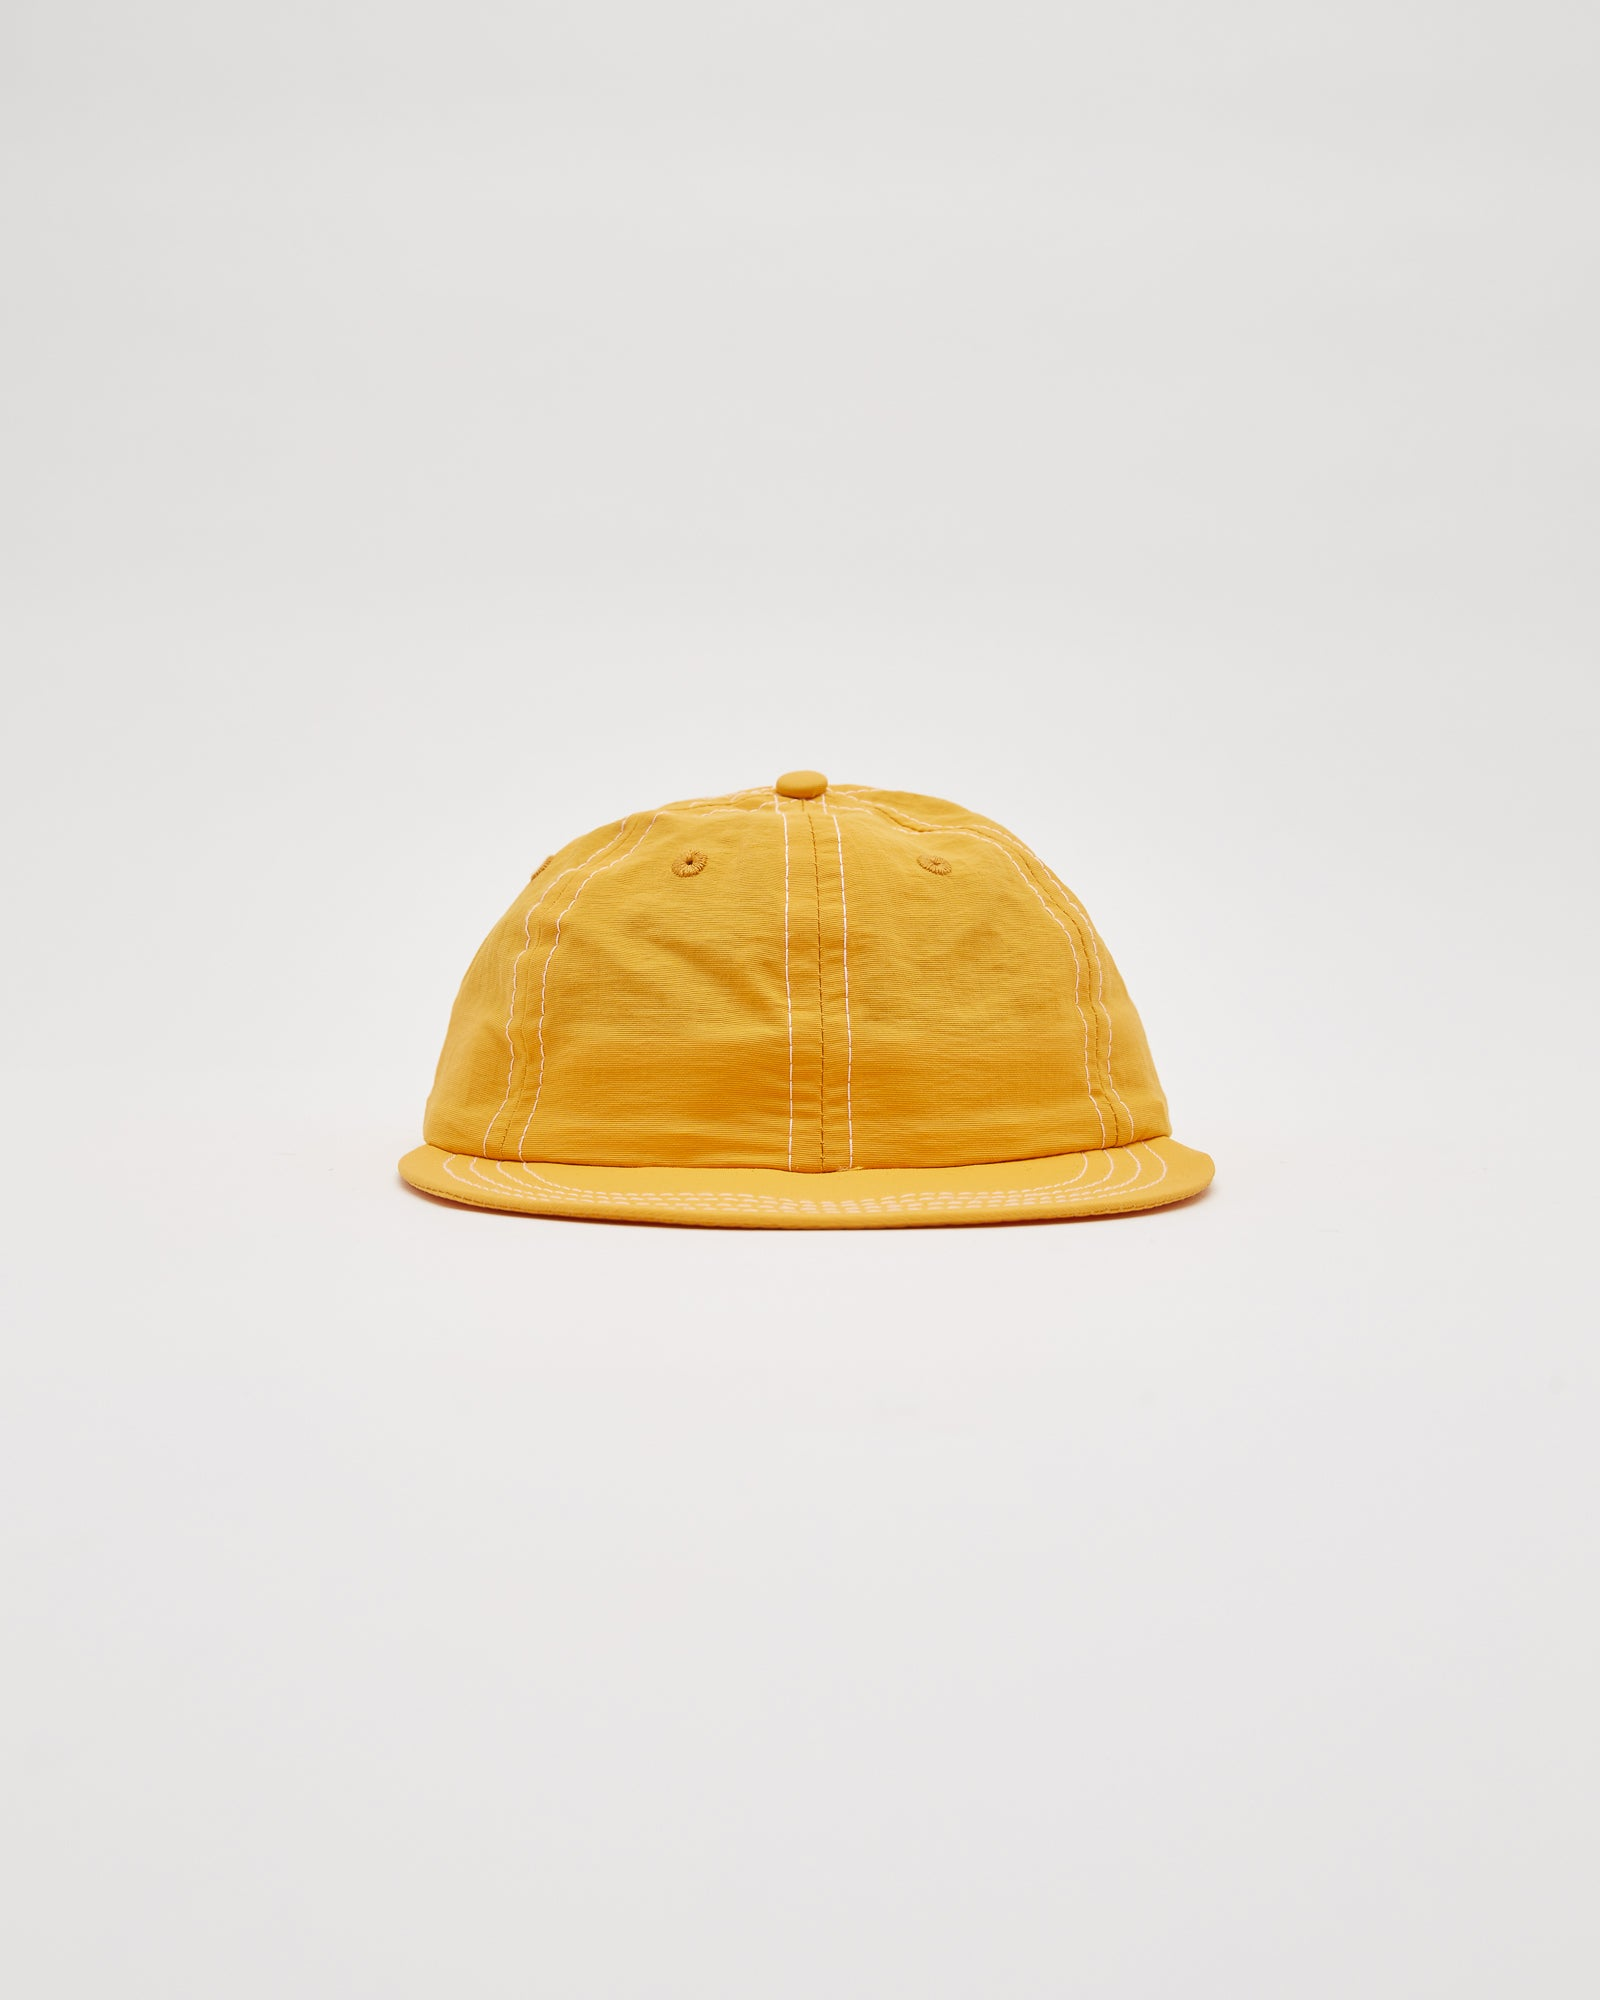 Six Panel Contrast Stich Cap in Lemon/Spruce